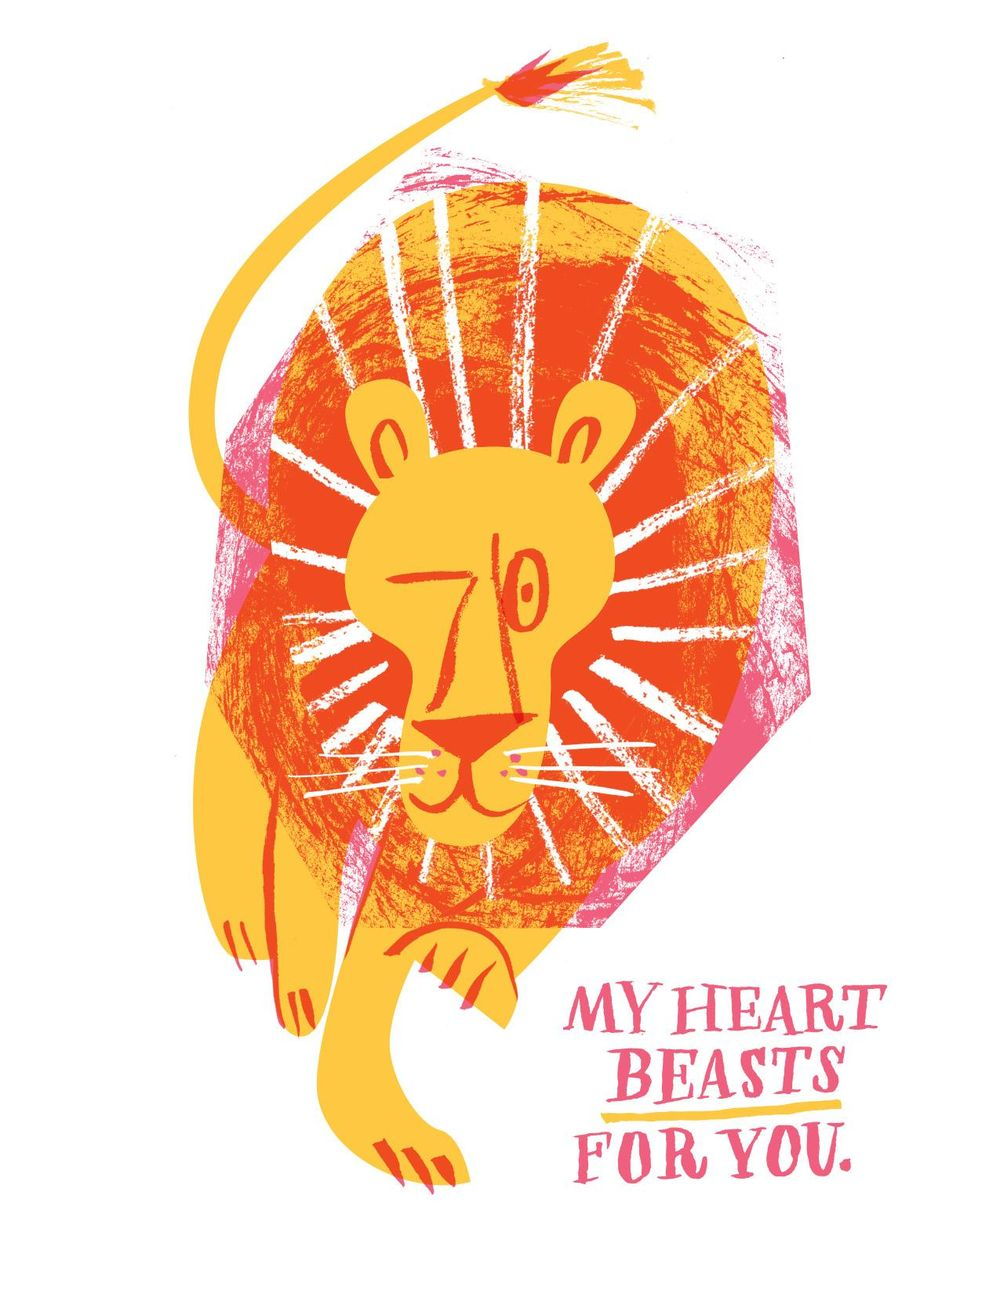 My Heart BEASTS For You - image 6 - student project